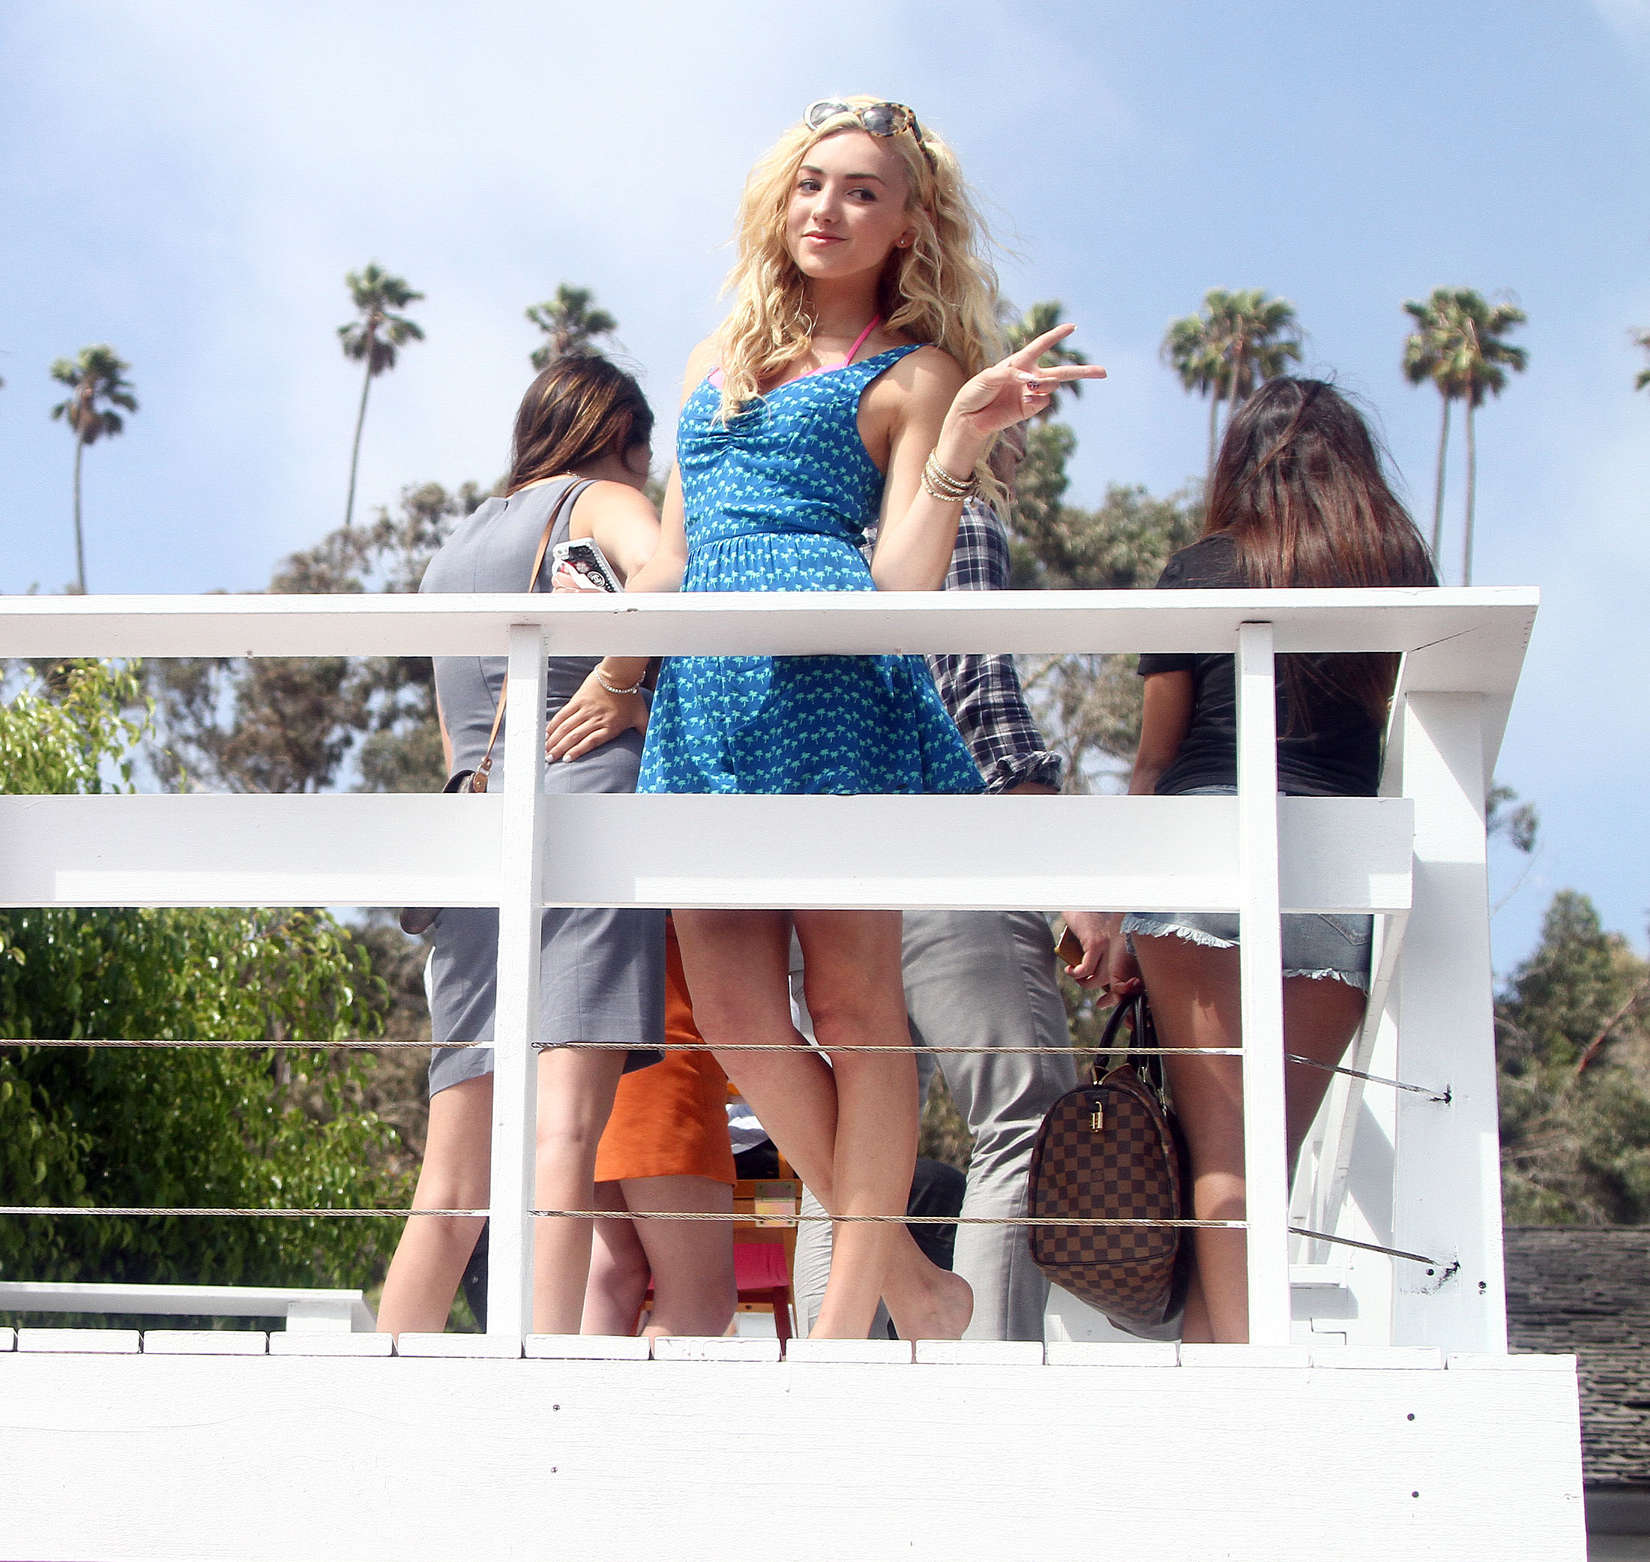 Peyton roi list at the hollister house 16 gotceleb for Hollister house